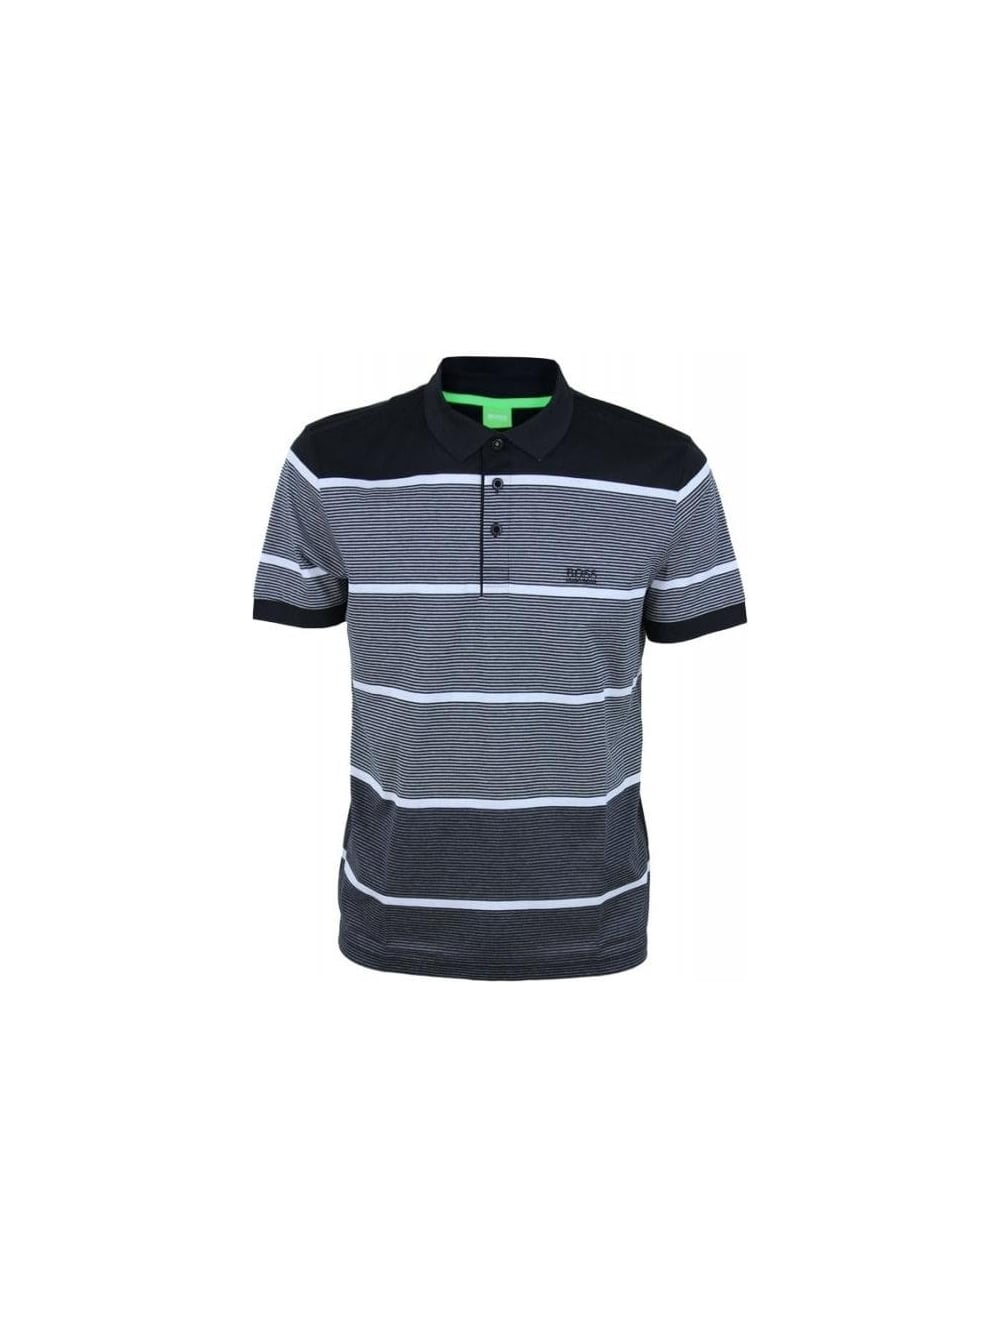 3a95b77cb Hugo Boss Green Paddy 3 Polo in Black - Northern Threads